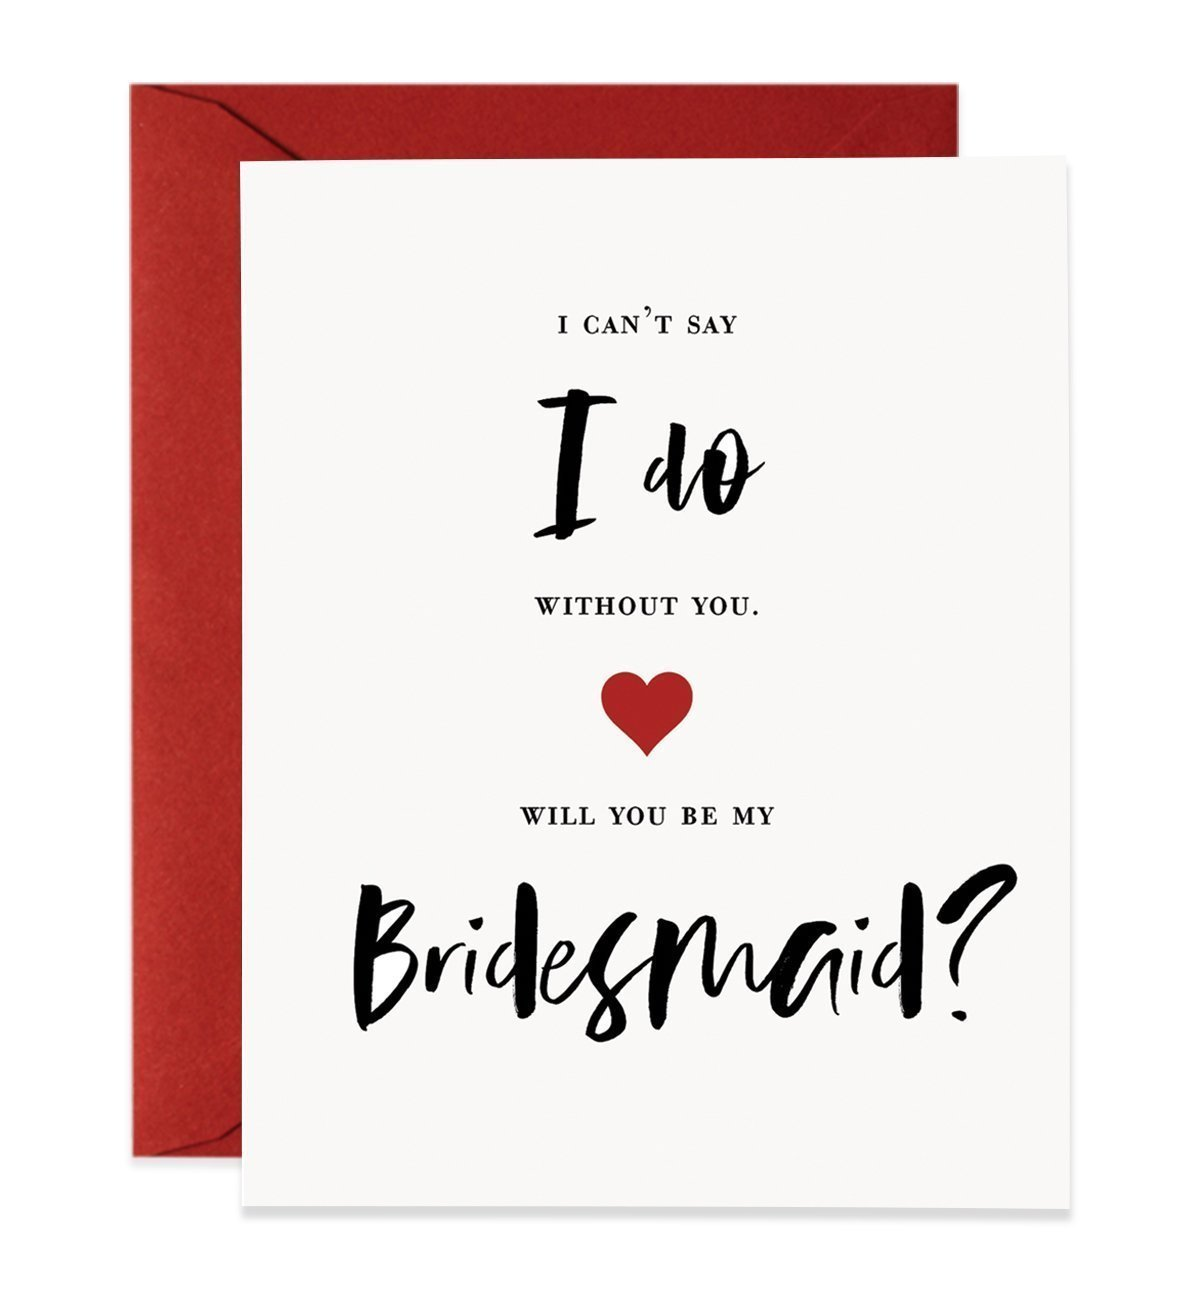 Will You Be My Bridesmaid Proposal Cards (Set of 5) Red & Black Wedding Engaged Bridal Party Modern Lettering Brides maids Card Box Pack with Red Envelopes CW0016-1